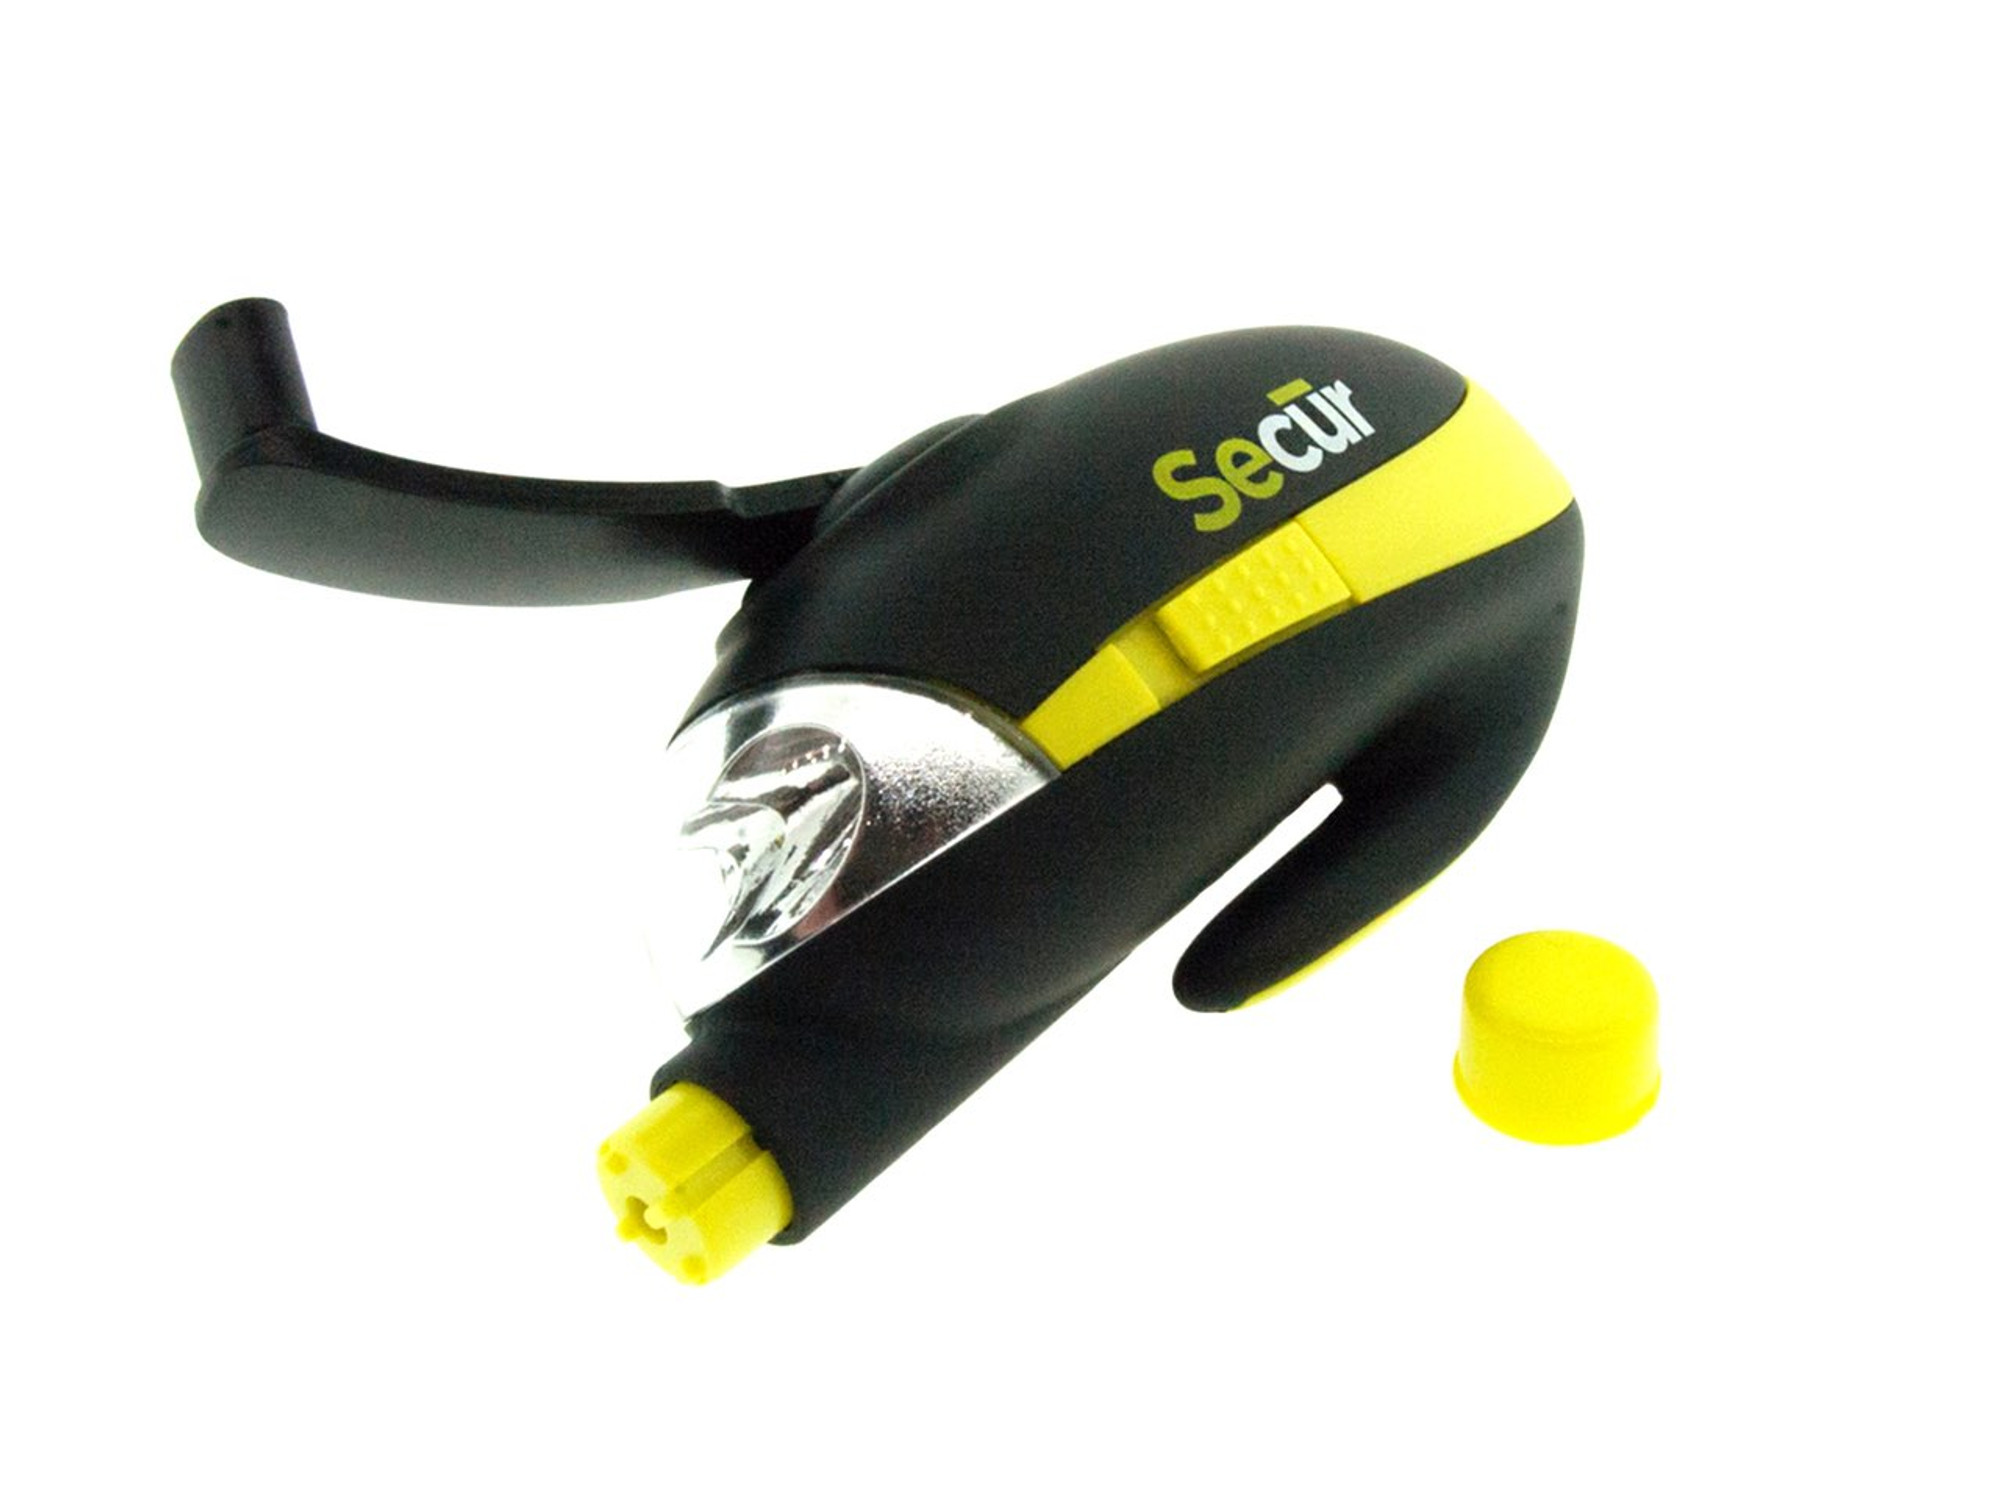 Secur 8 1 Emergency Auto Tool